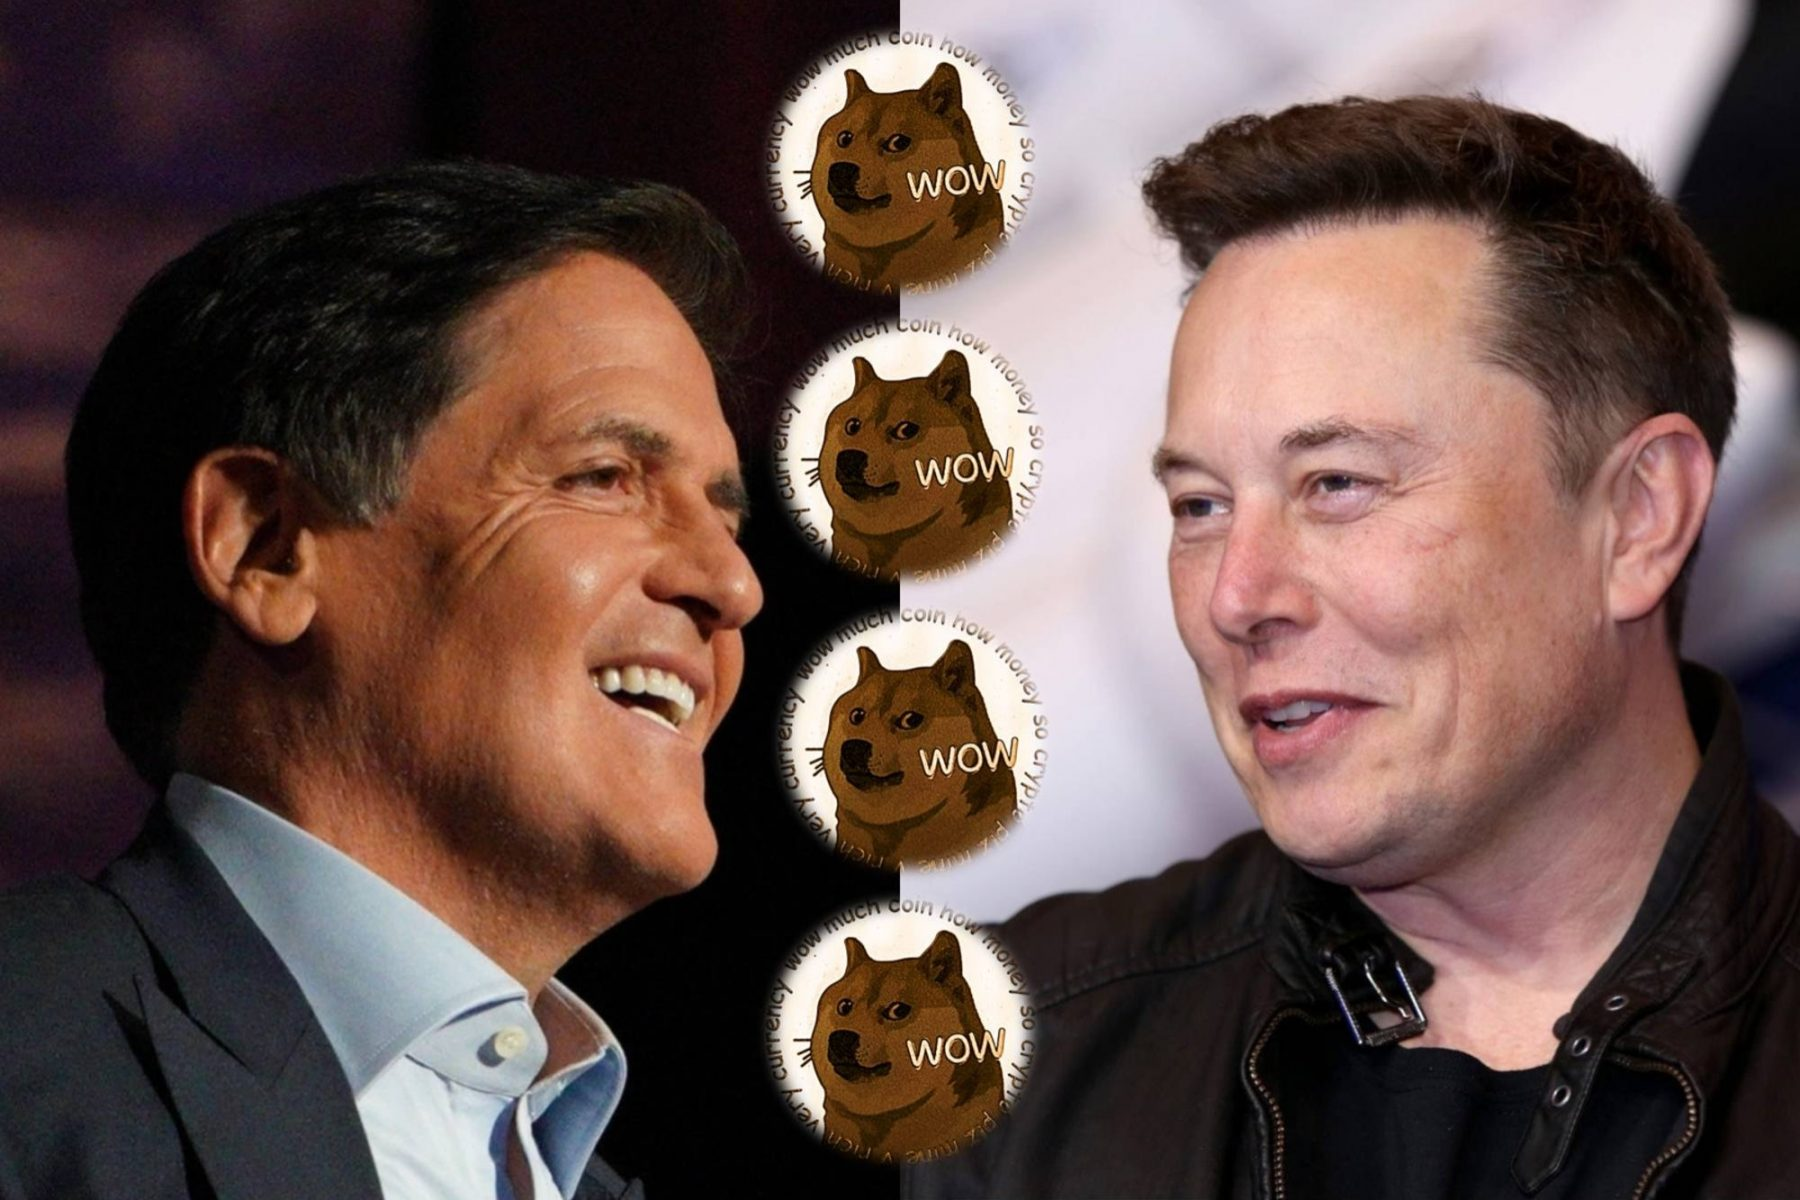 mark-cuban-says-dogecoin-is-the-'strongest'-cryptocurrency-and-elon-musk-responds